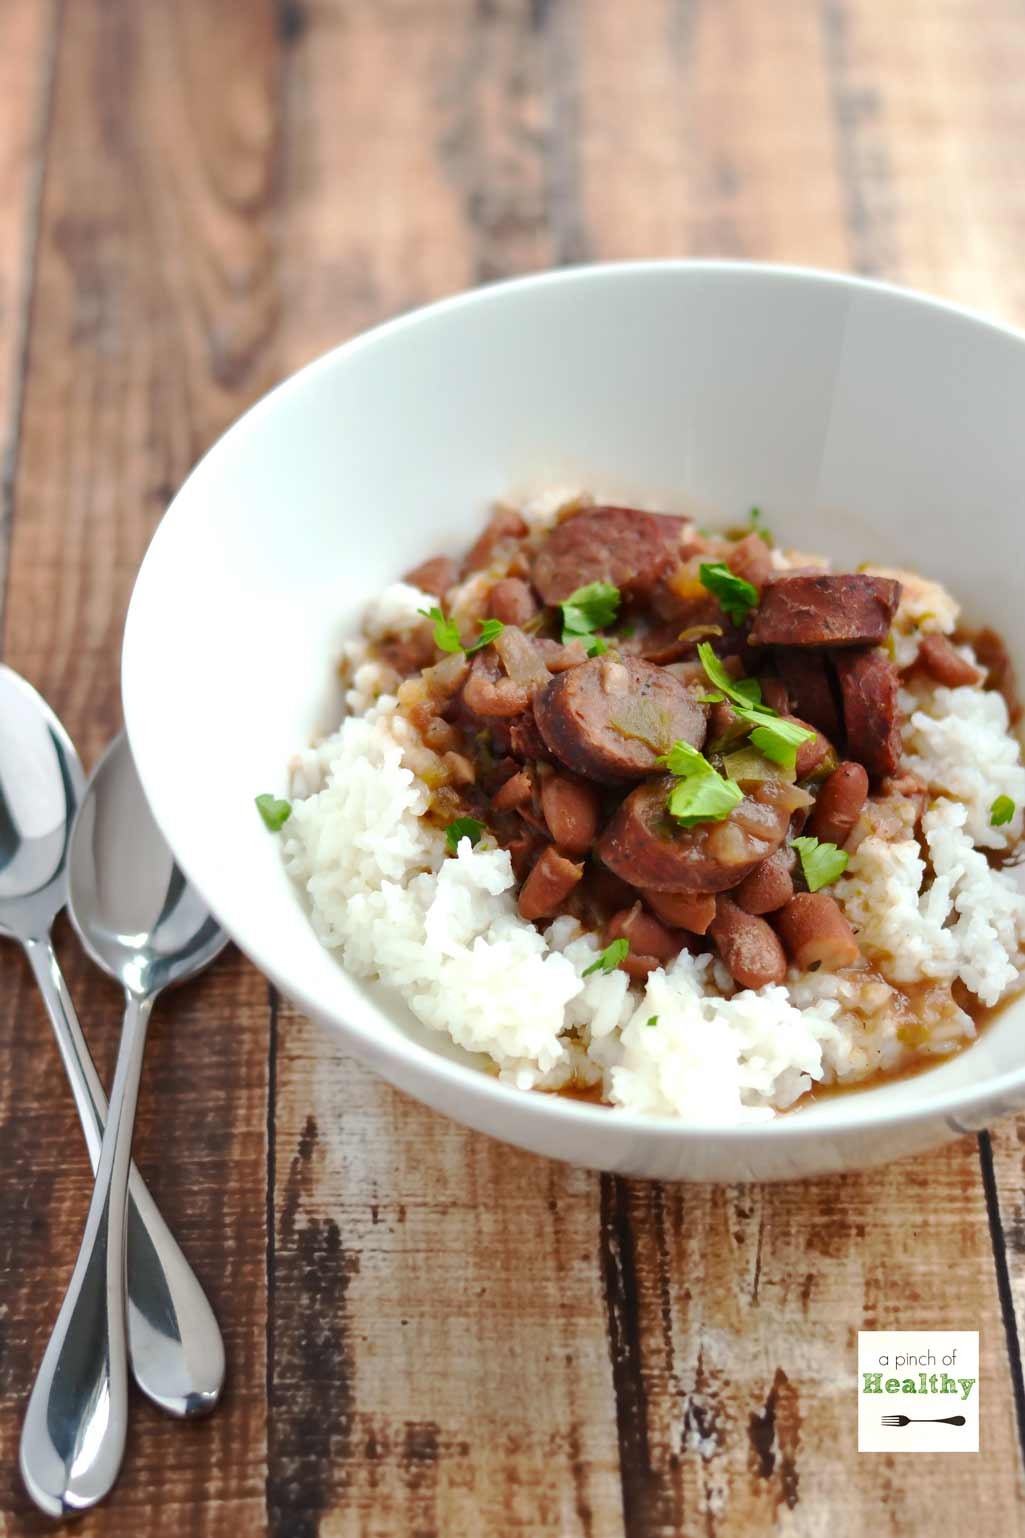 Red Beans And Rice Recipe Slow Cooker  Red Beans and Rice in the Slow Cooker A Pinch of Healthy